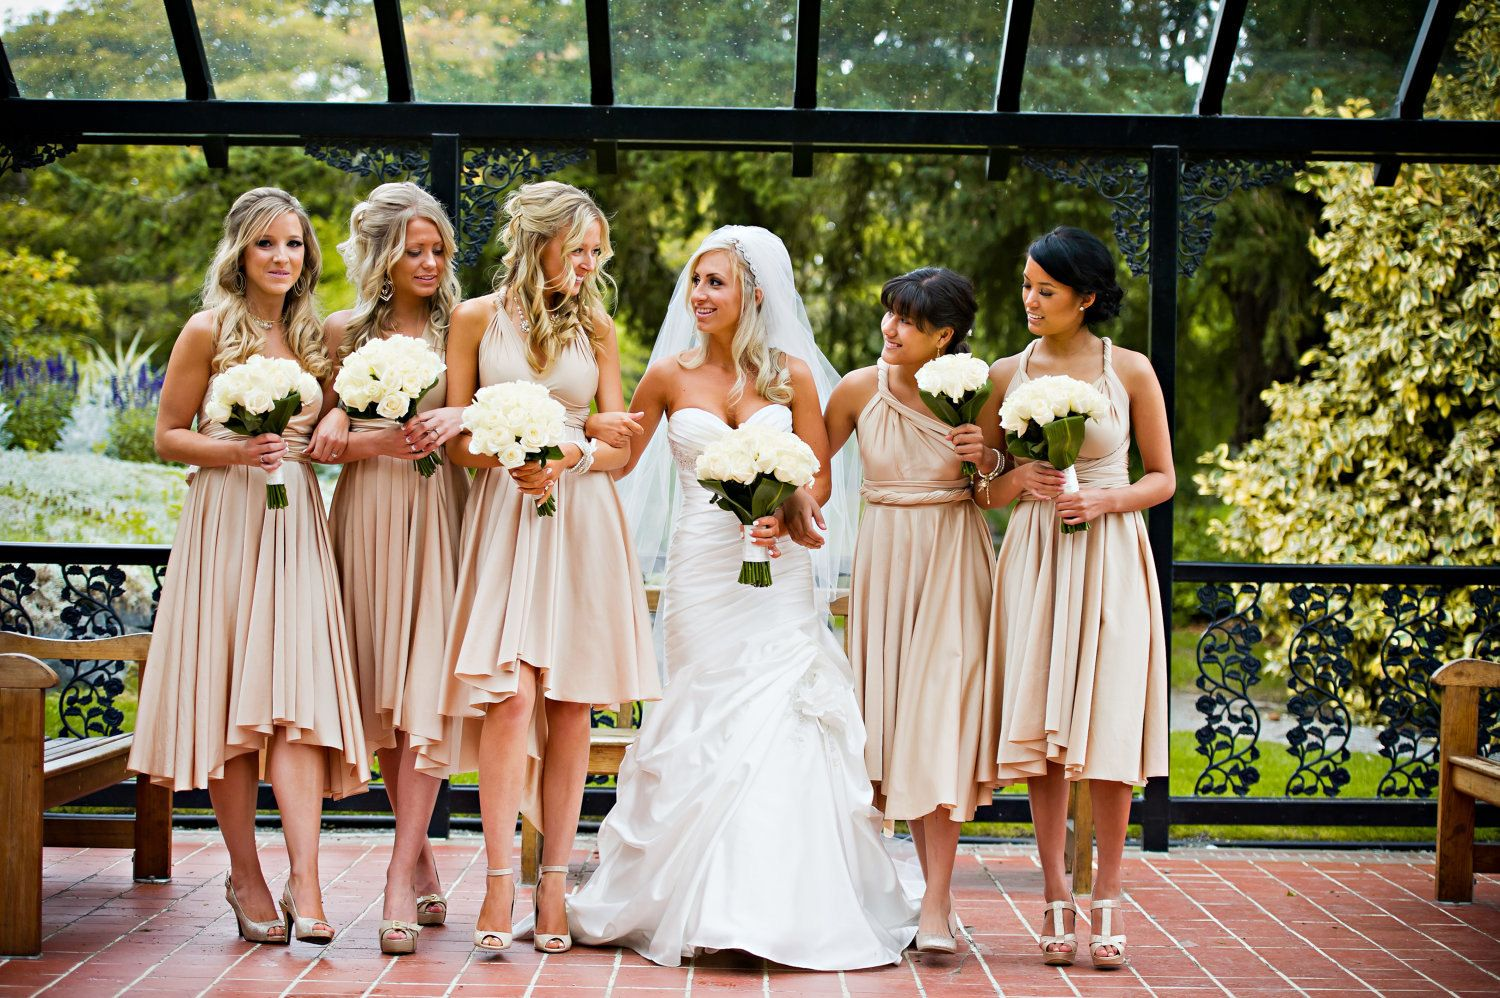 Wedding Nude Bridesmaid Dress collection nude bridesmaid dress pictures fashion trends and models ocodea com